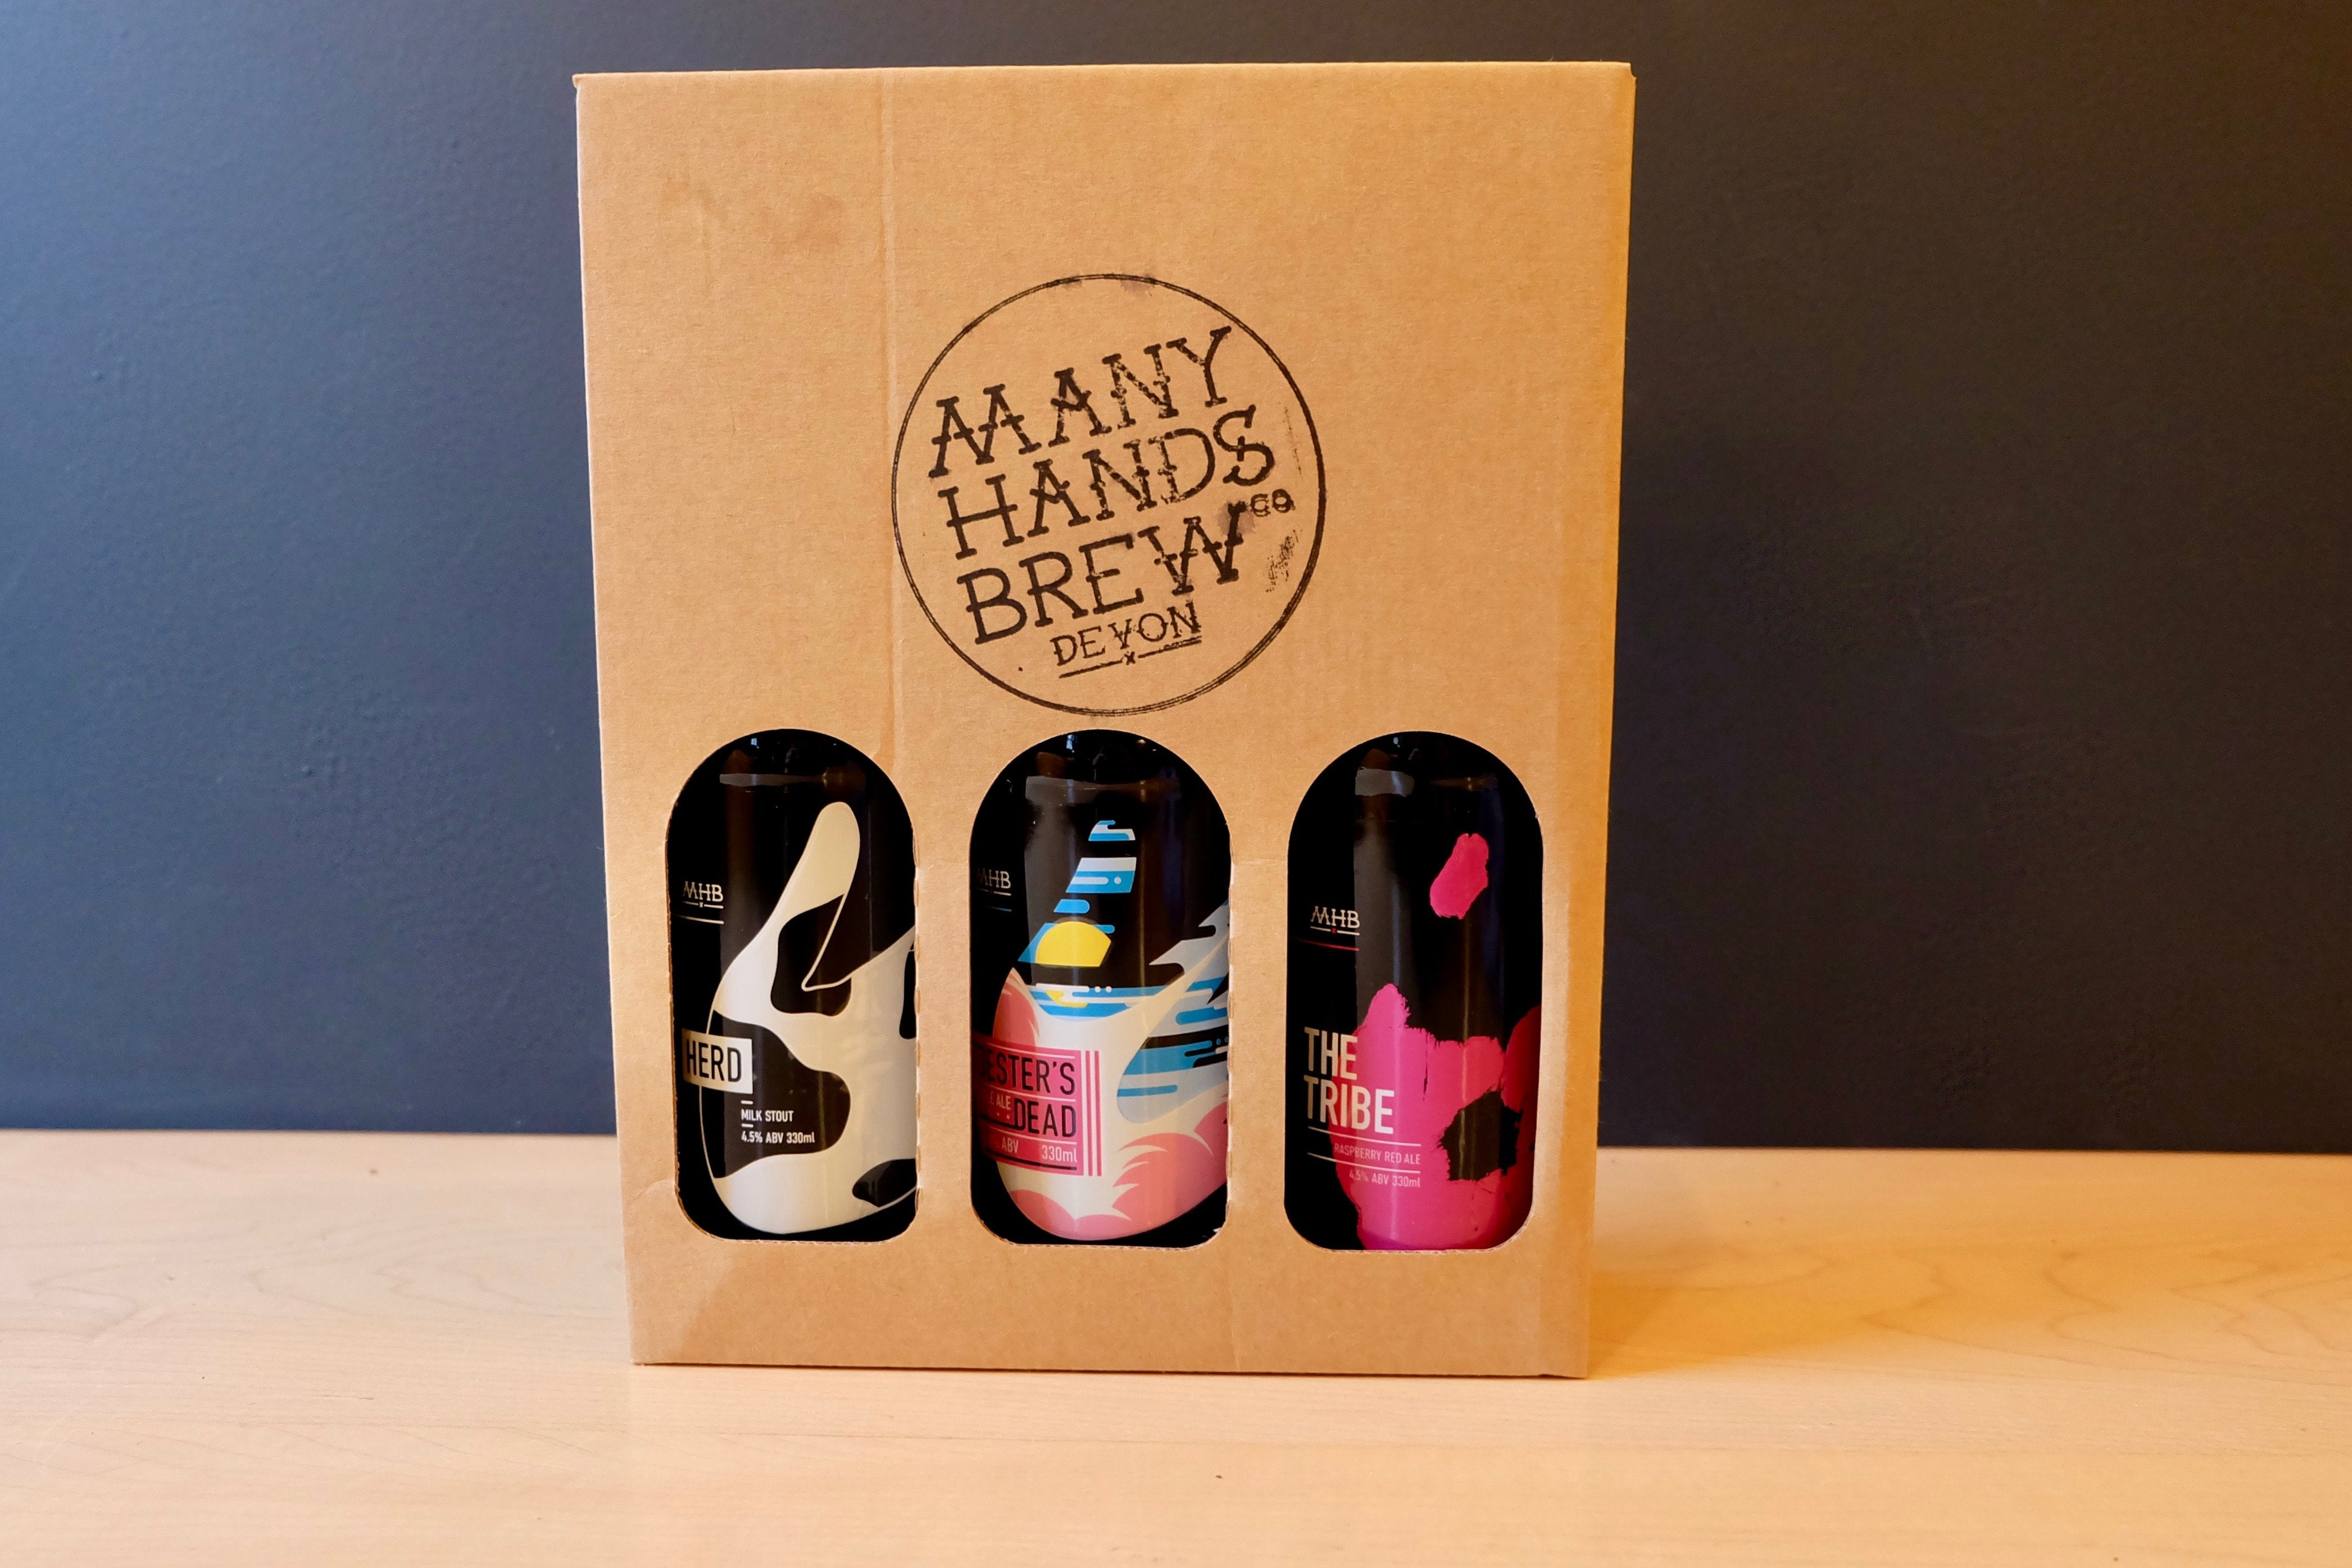 Many Hands Brew Co. Gift Box